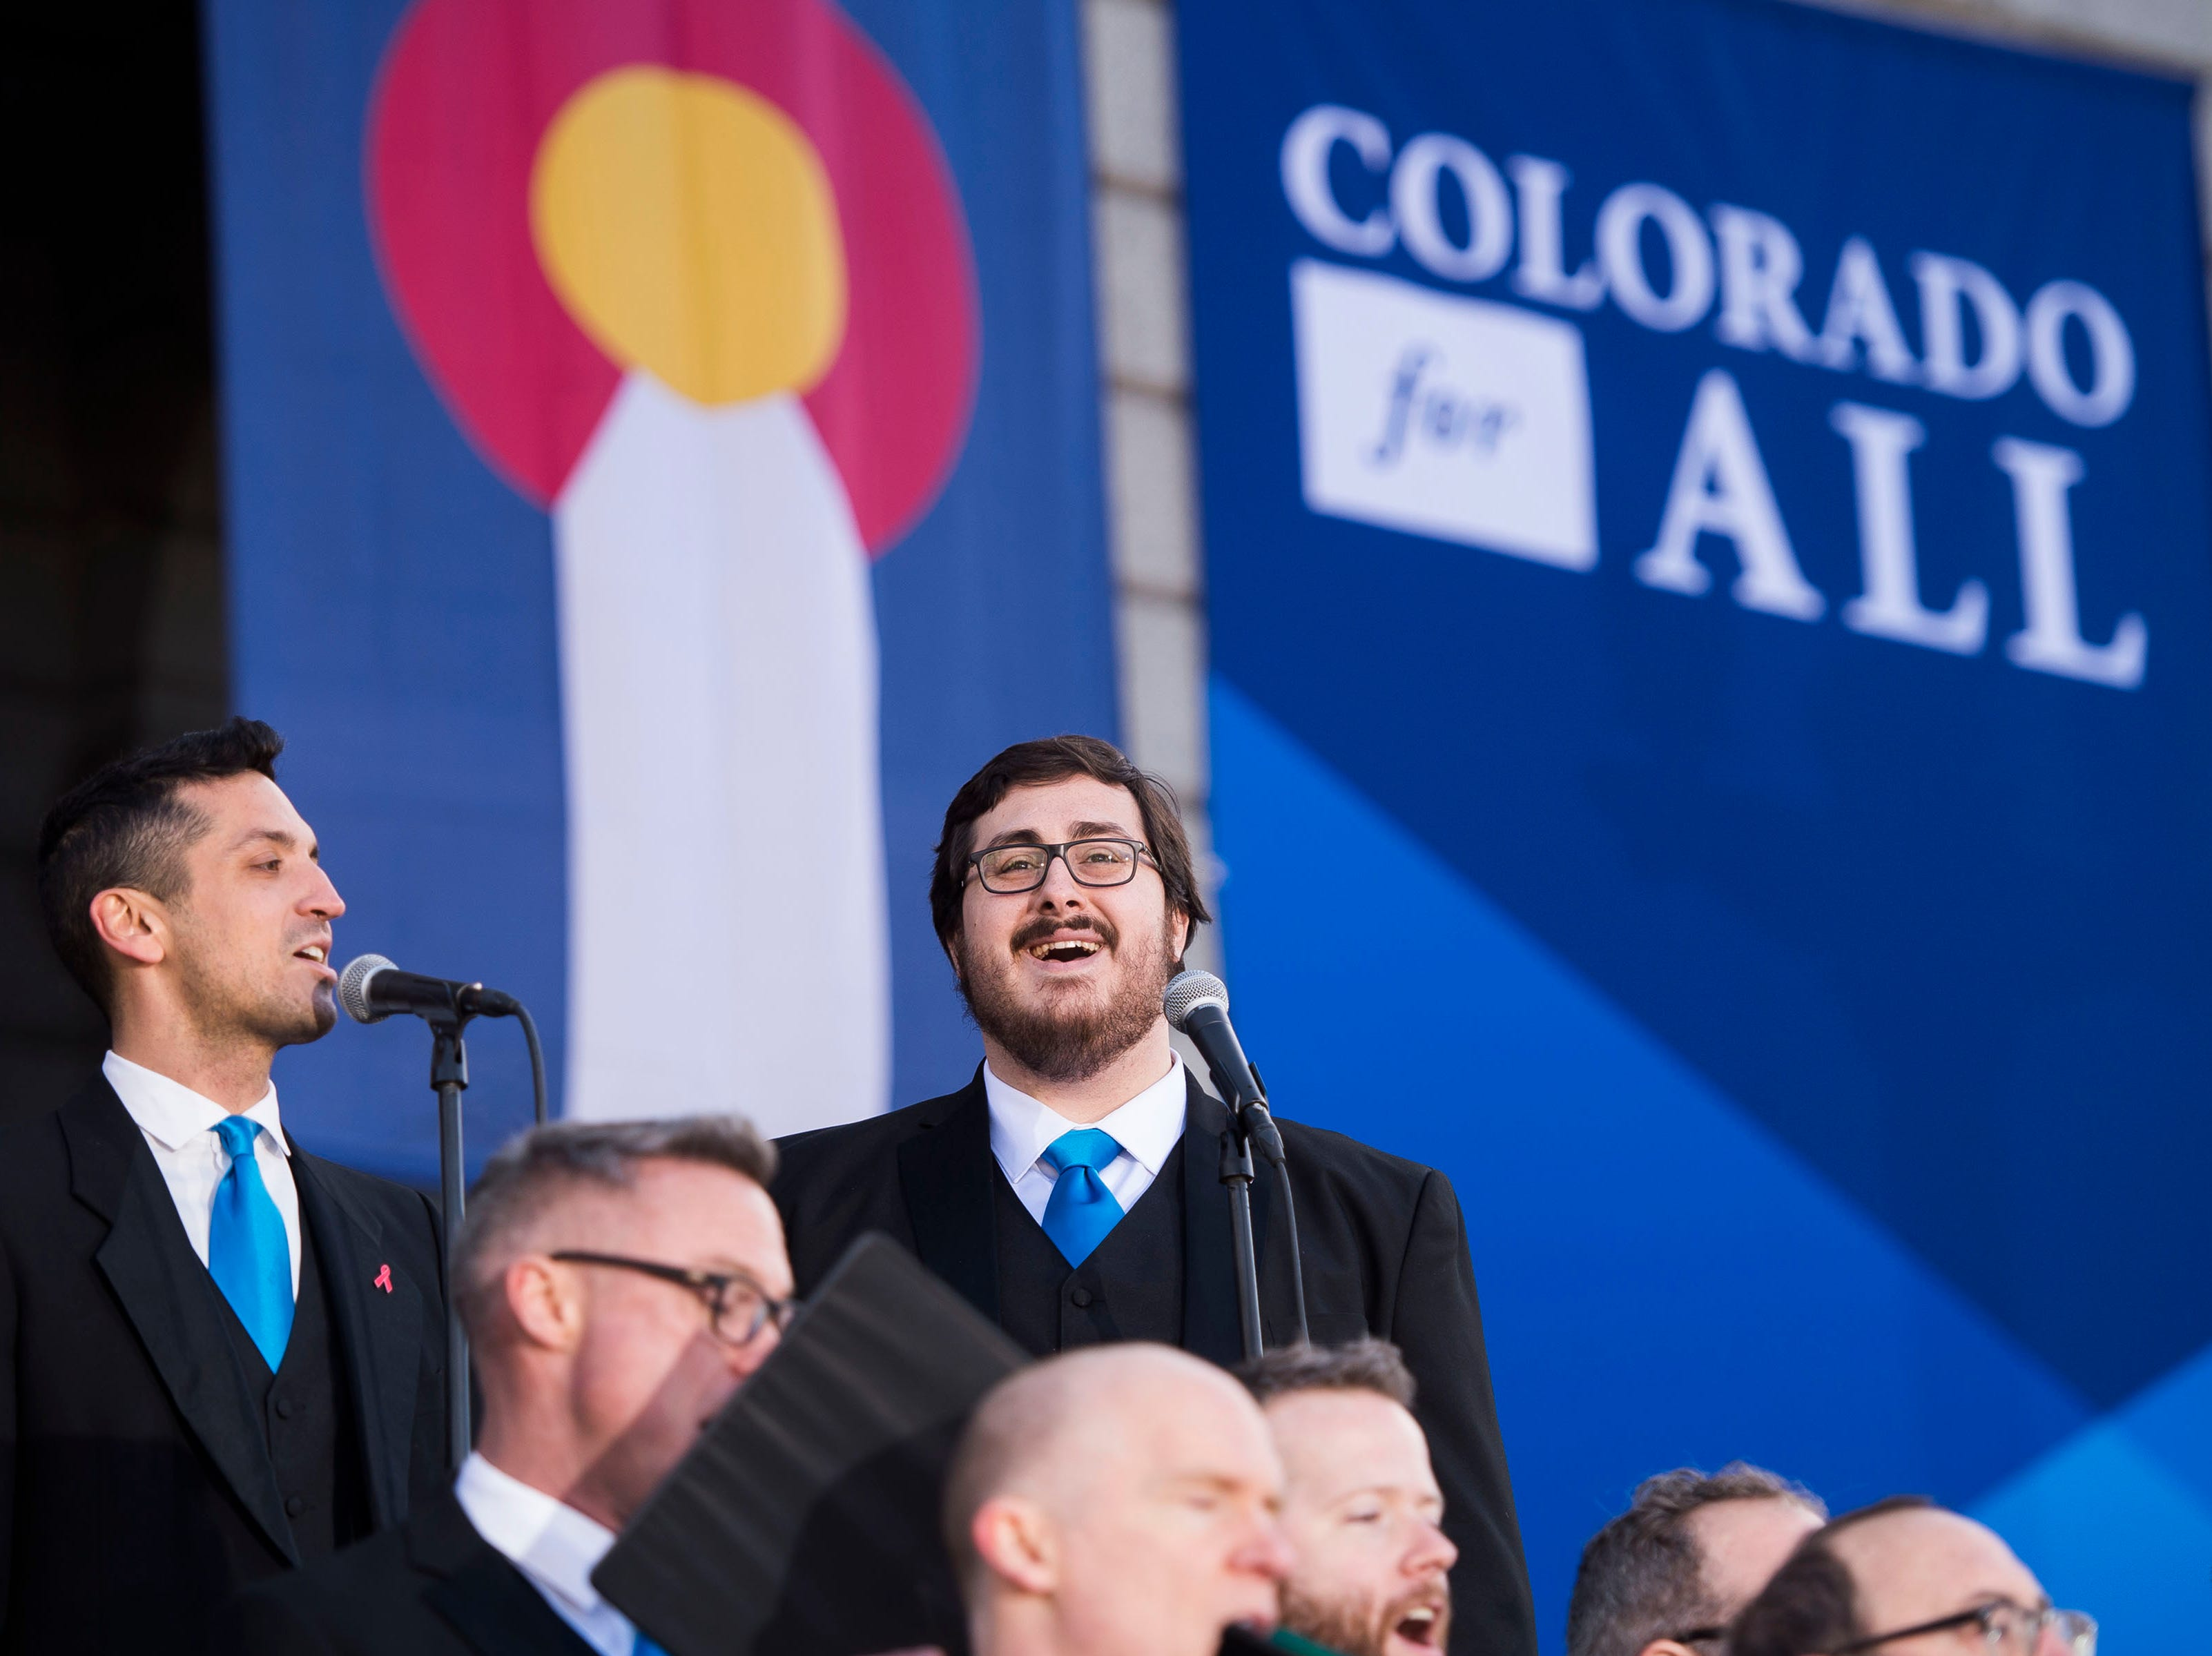 Members of the Denver Gay Men's Chorus perform before the inauguration of Colorado State Governor Jared Polis on Tuesday, Jan. 8, 2019, in front of the Colorado State Capital building in Denver, Colo.